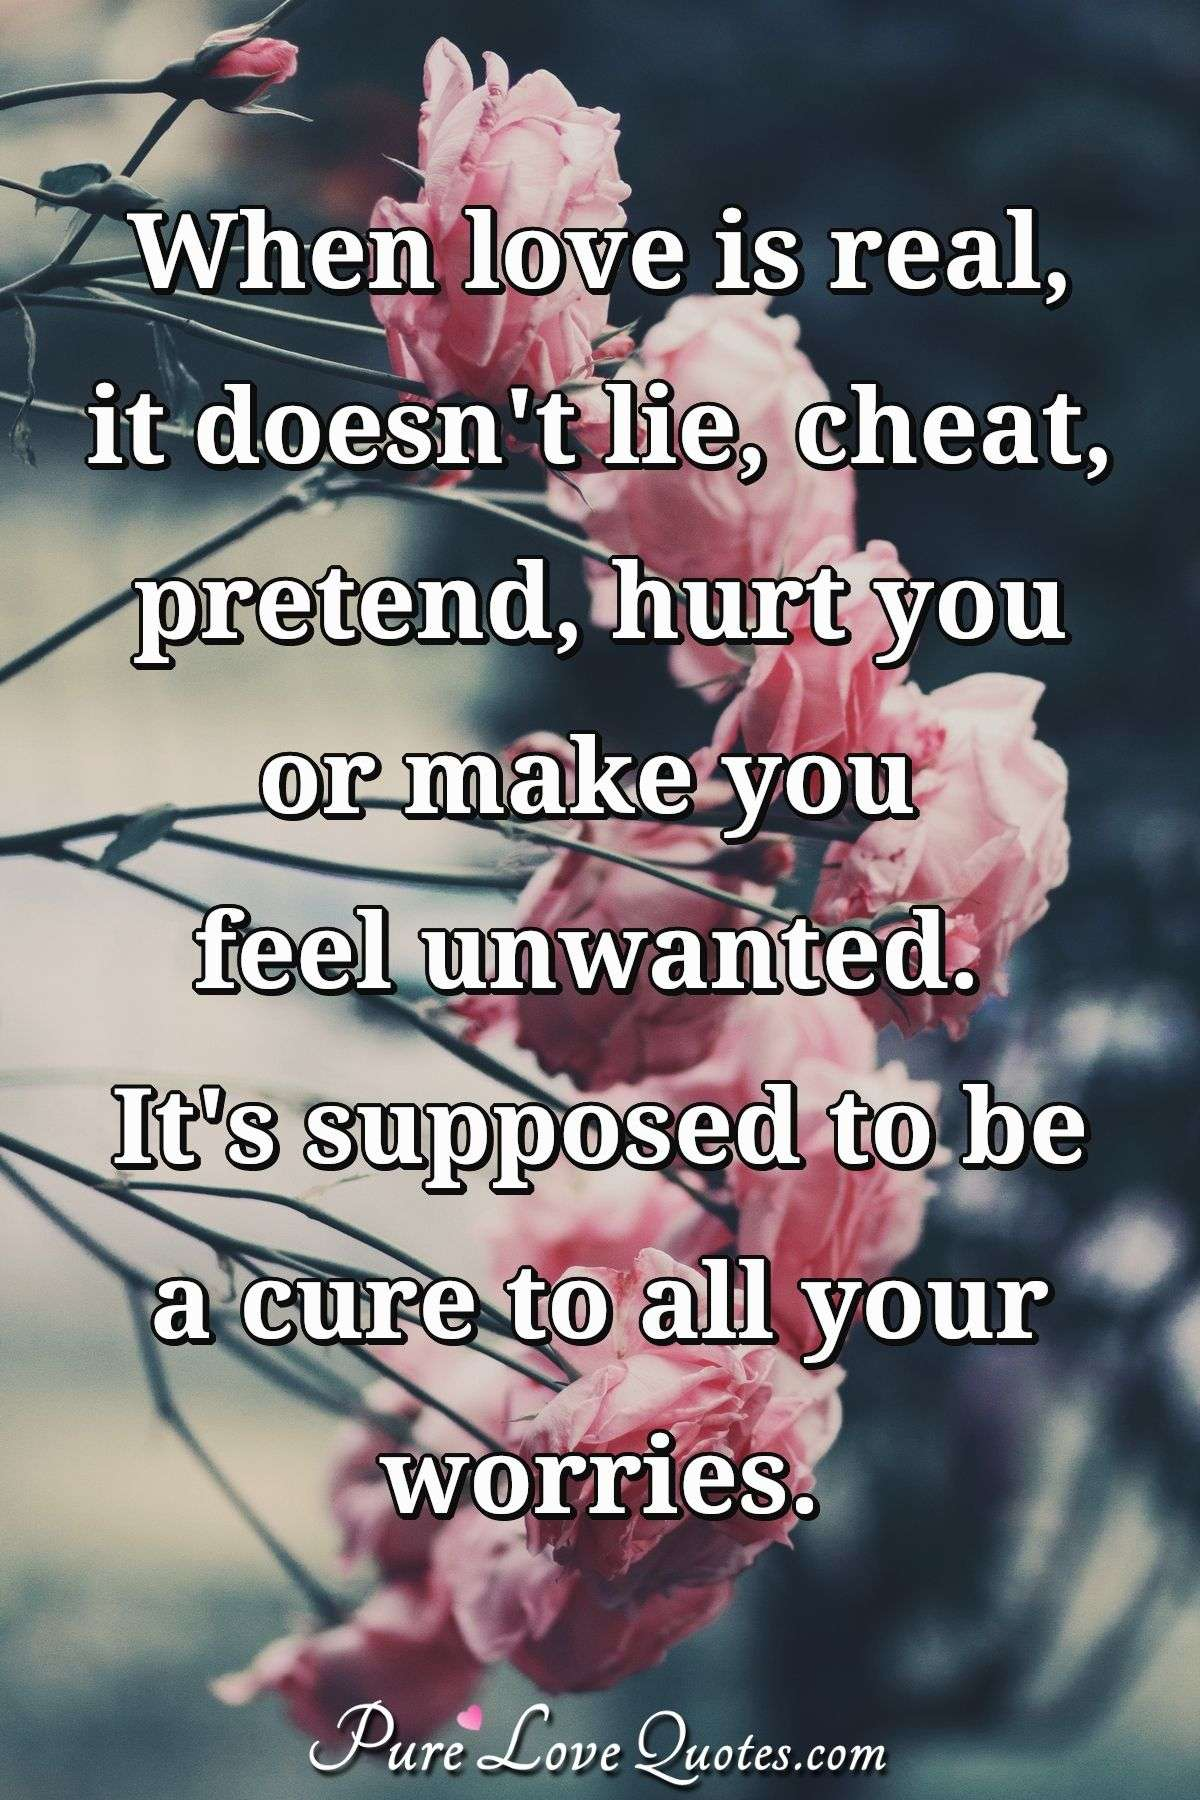 Love Doesnt Hurt Quote : doesnt, quote, Real,, Doesn't, Cheat,, Pretend,, Feel..., PureLoveQuotes